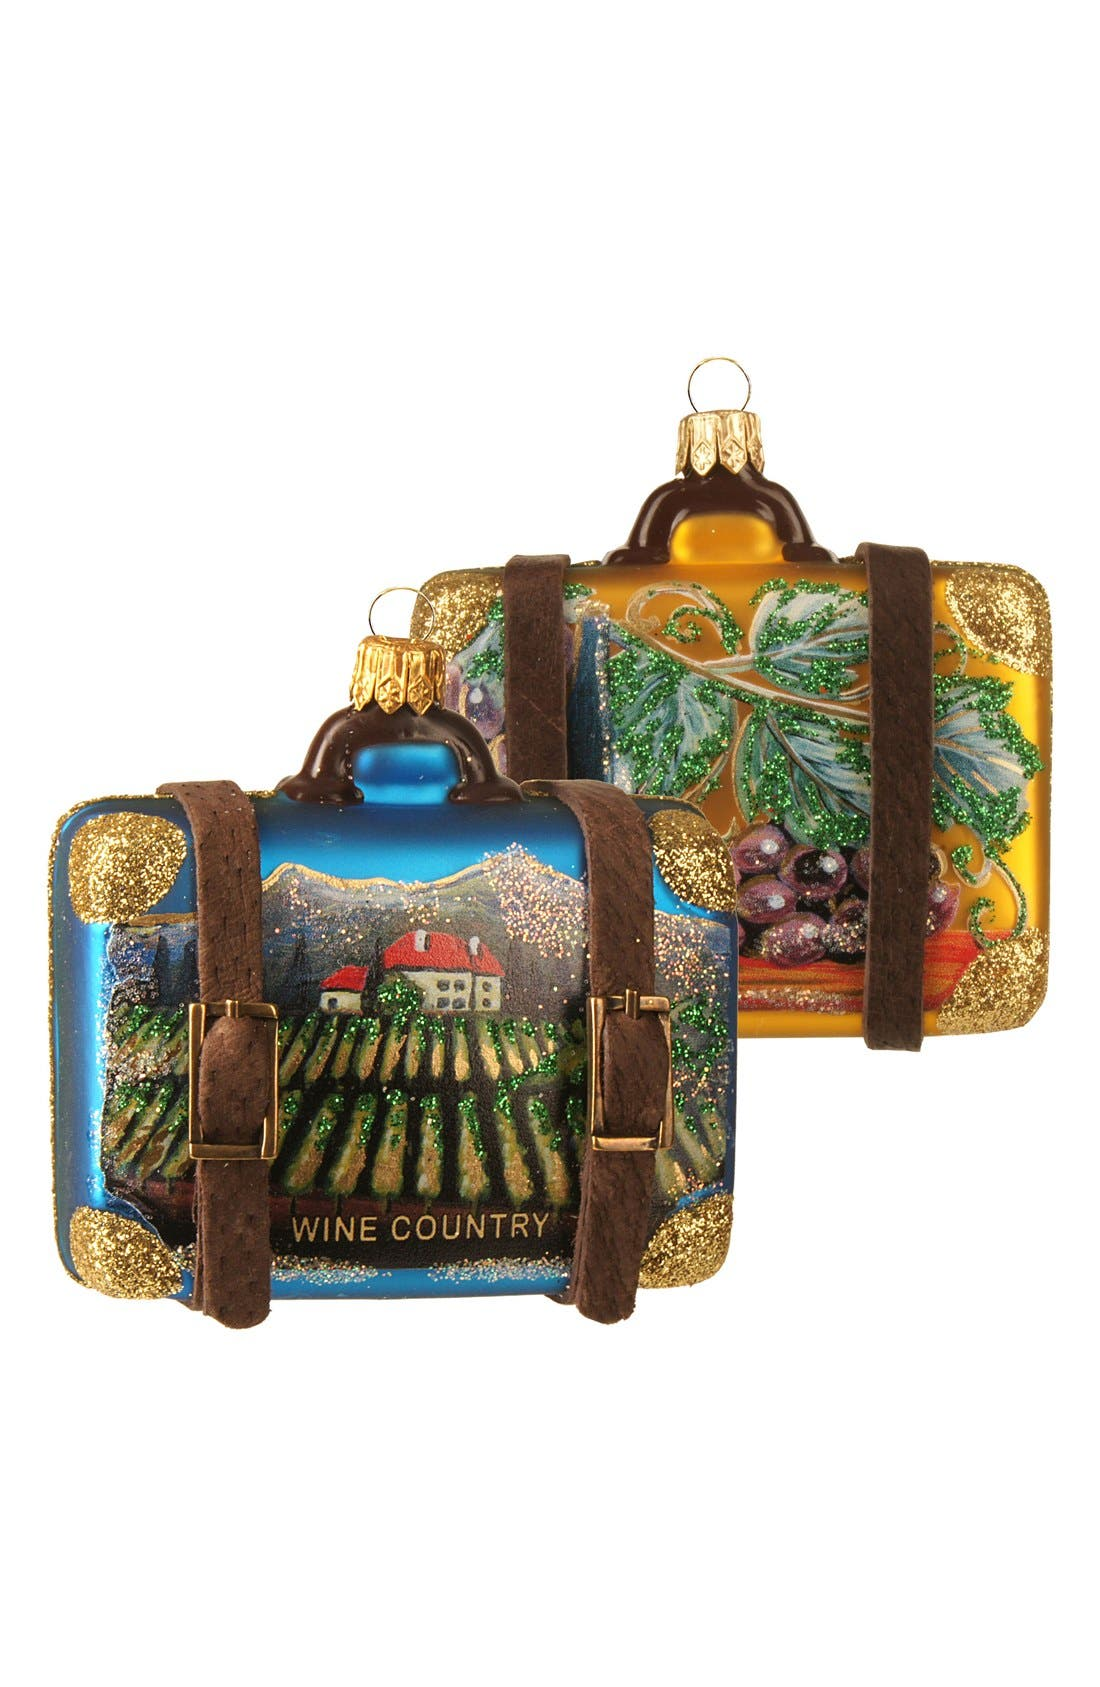 Handblown Glass Travel Suitcase Ornament,                             Main thumbnail 1, color,                             WINE COUNTRY